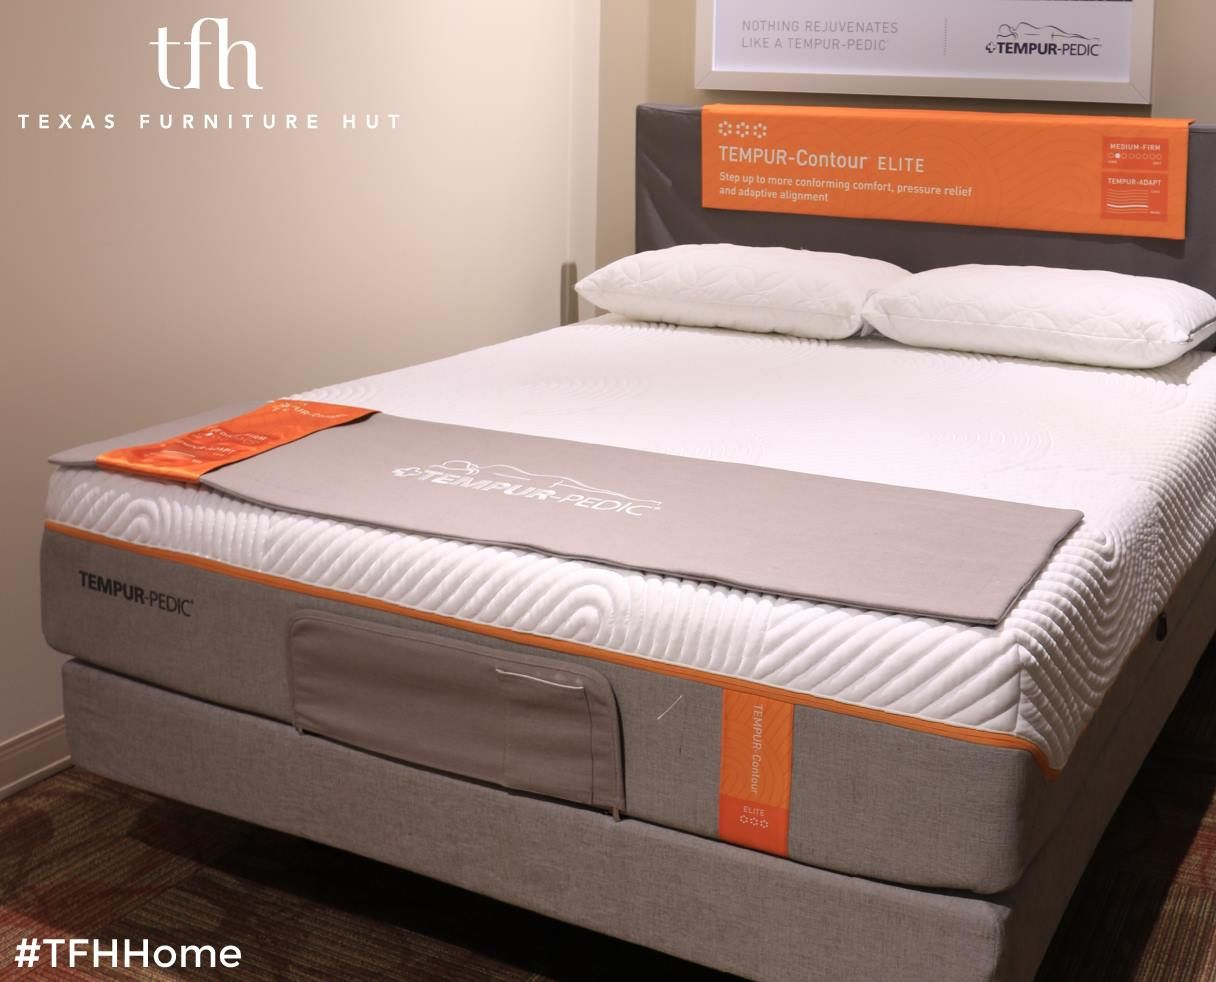 Did You Know That Texas Furniture Hut Carries Tempur Pedic